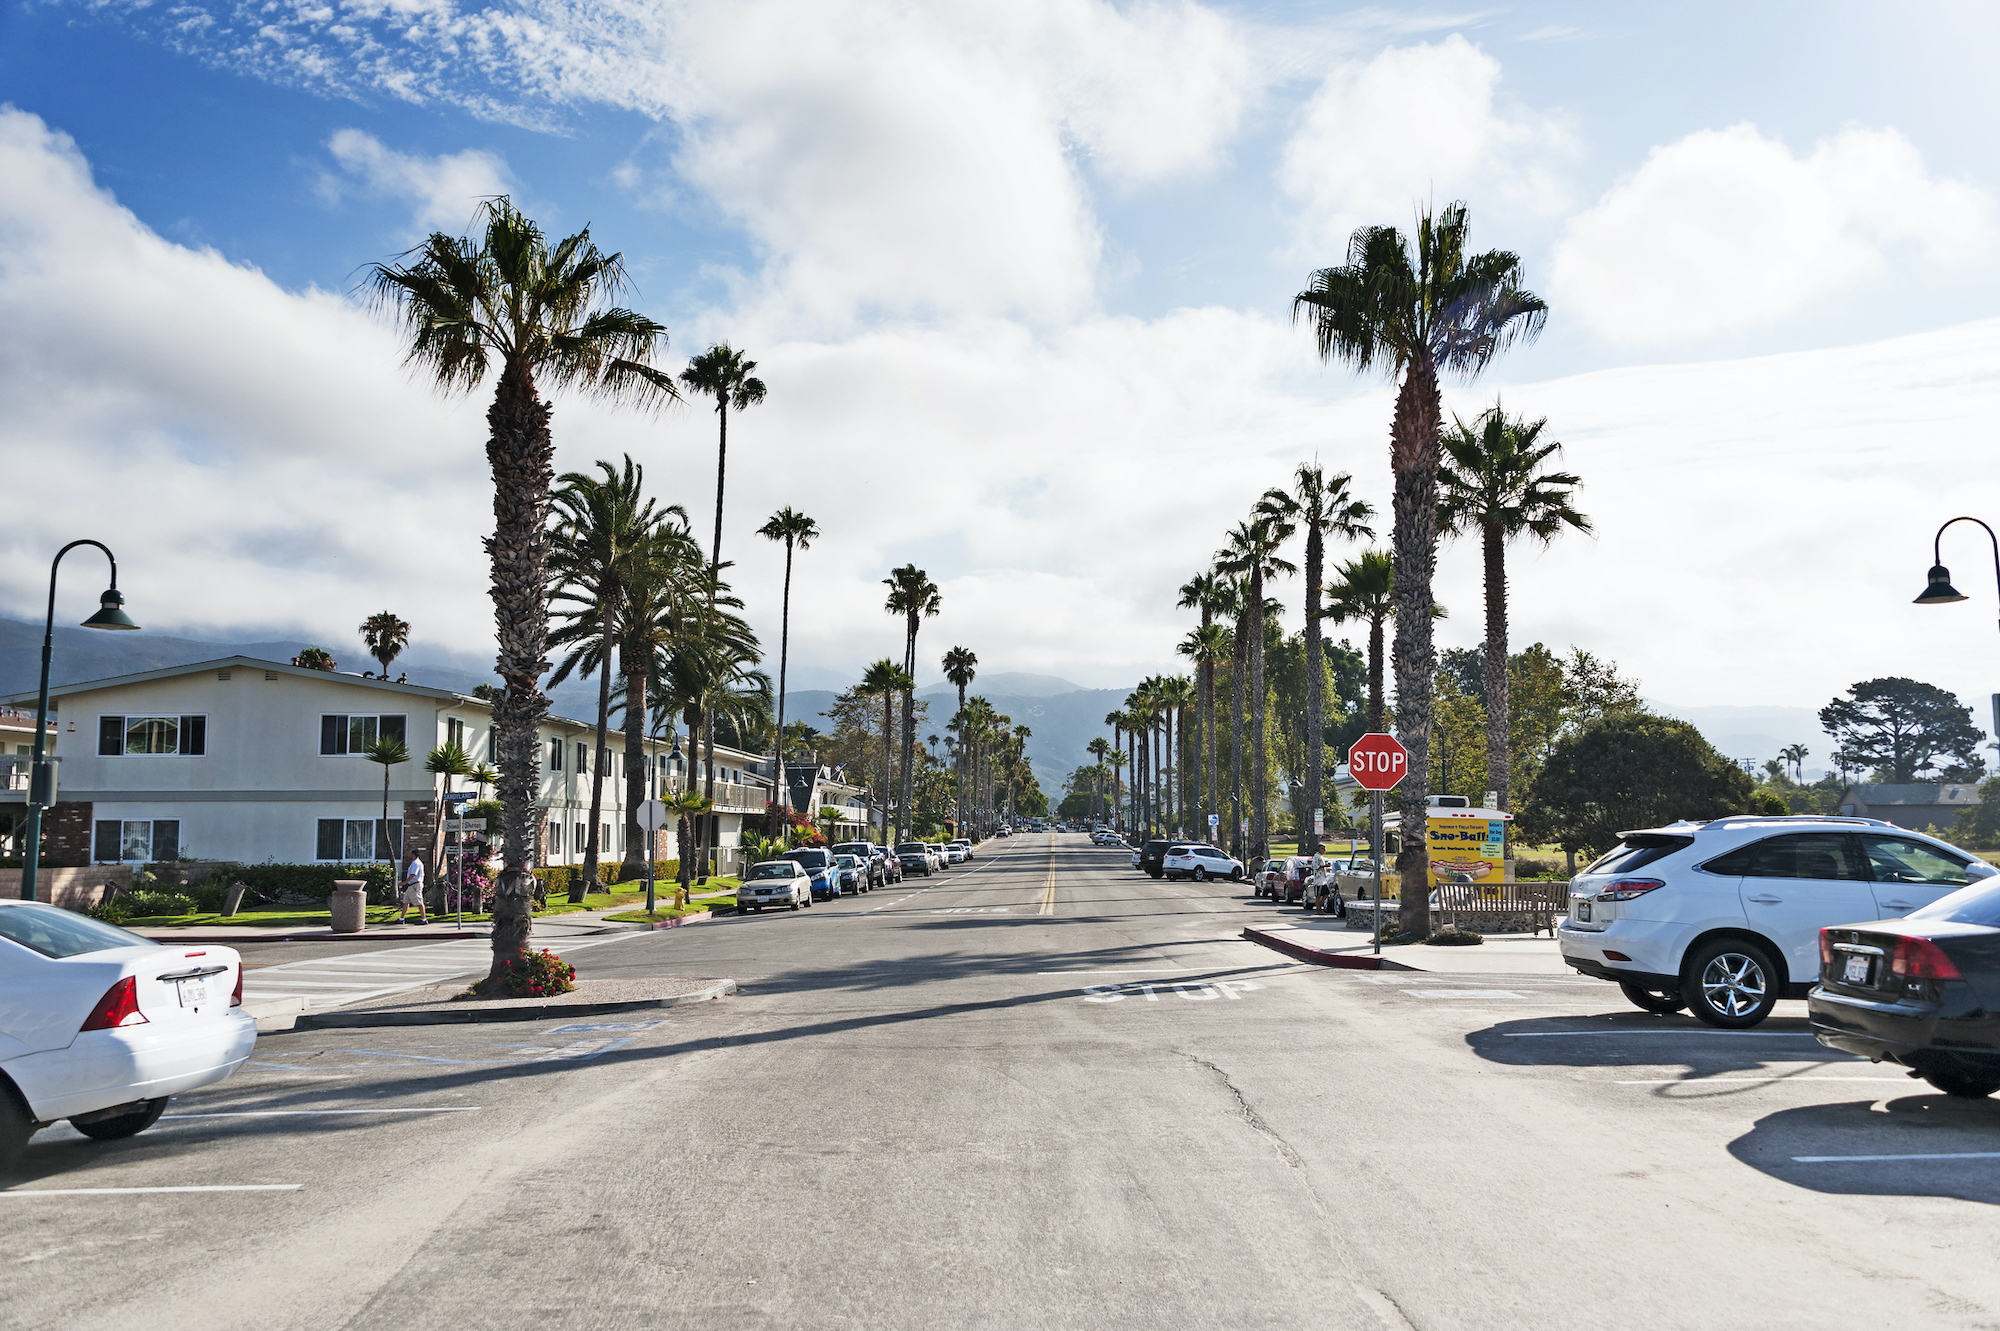 California's cities such as Carpinteria are only beginning to absorb the devastating blows of this pandemic — and strategizing about how to survive the COVID recession. Above Carpinteria. Image via iStock.